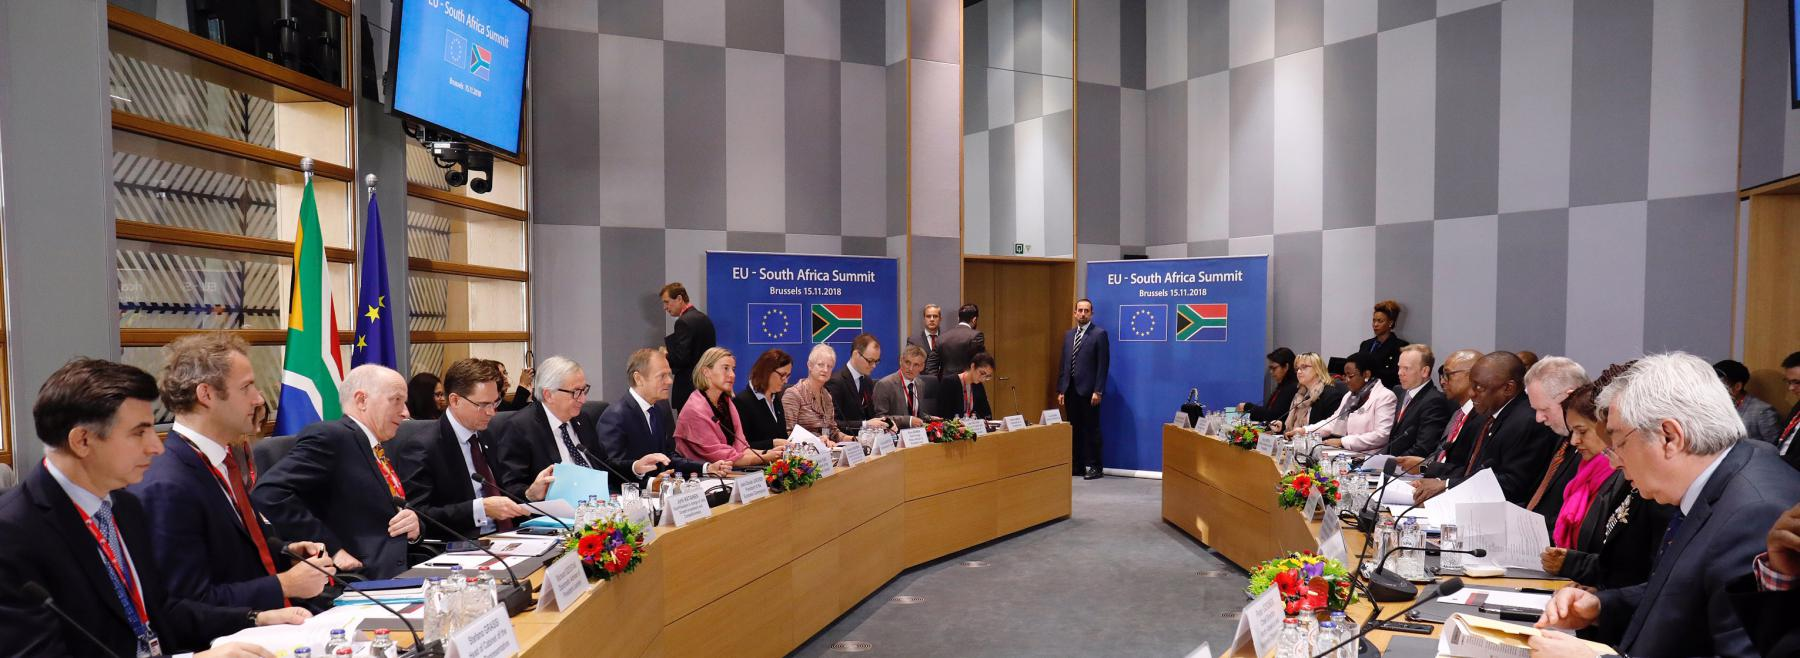 eu south africa summit.recropped